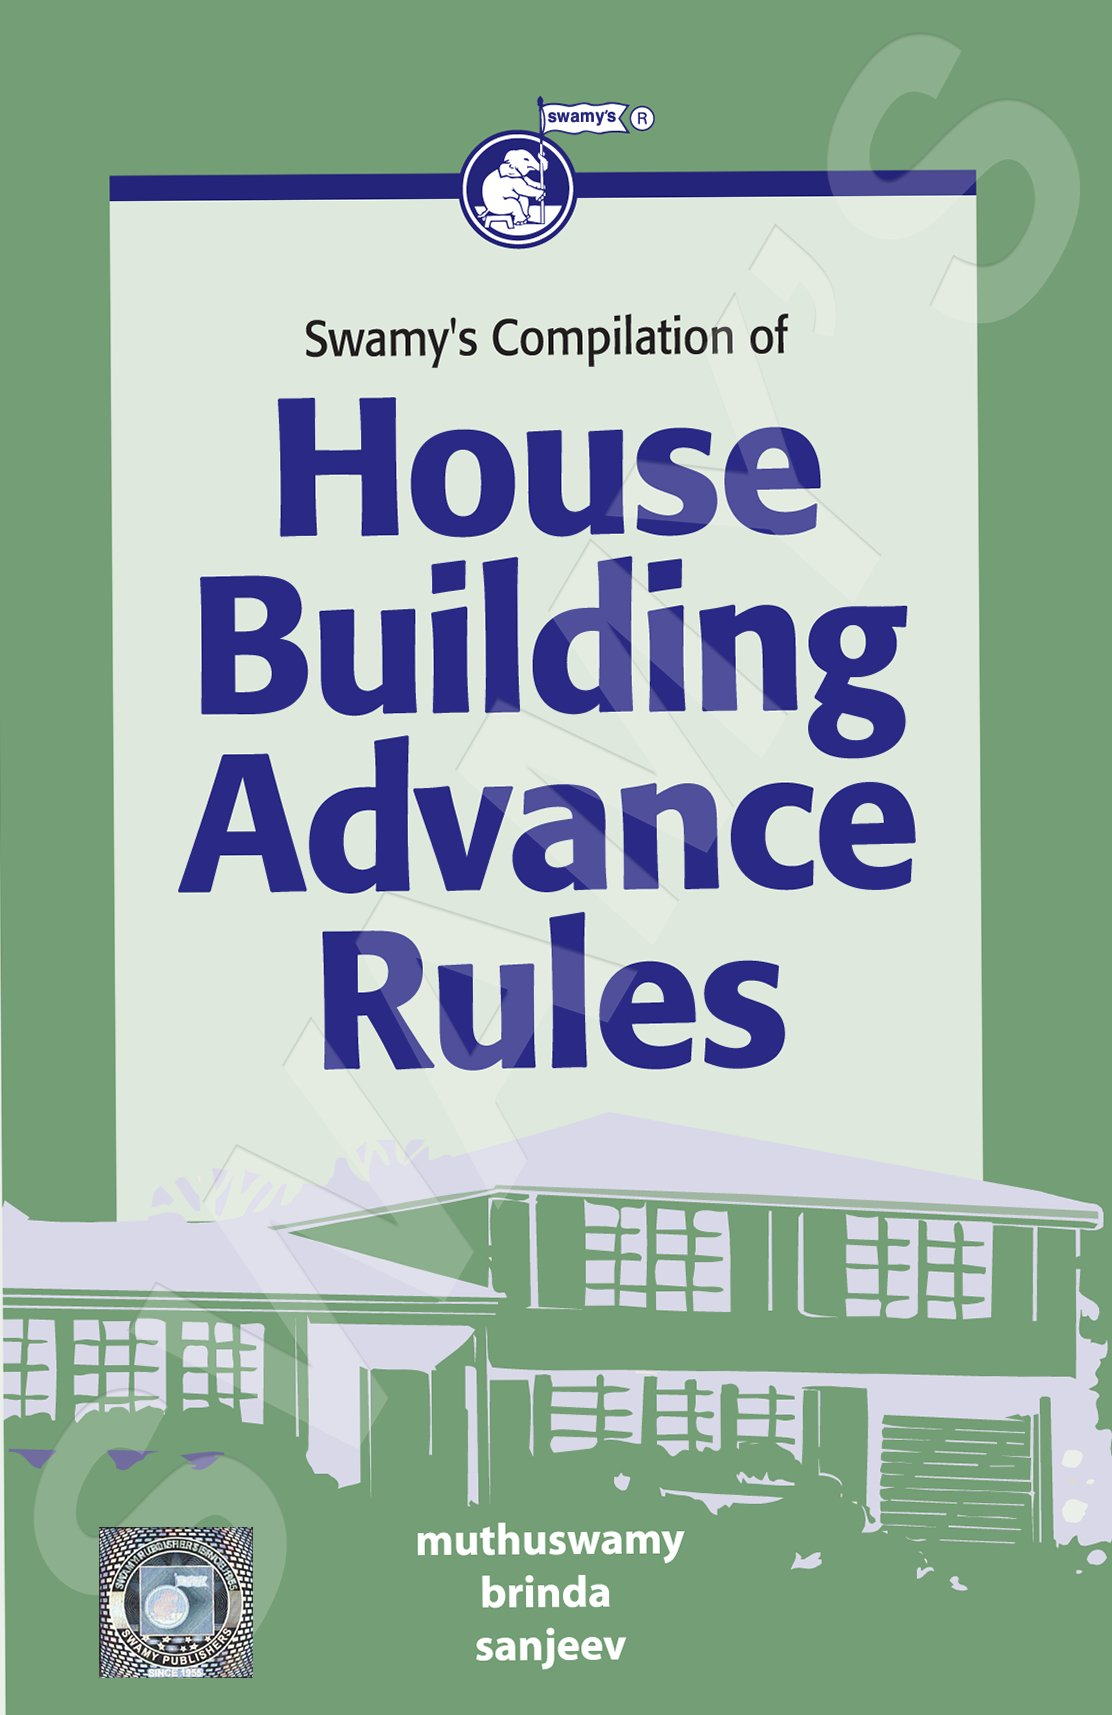 Buy Swamy's Compilation of House Building Advance Rules Book Online at Low  Prices in India | Swamy's Compilation of House Building Advance Rules  Reviews ...